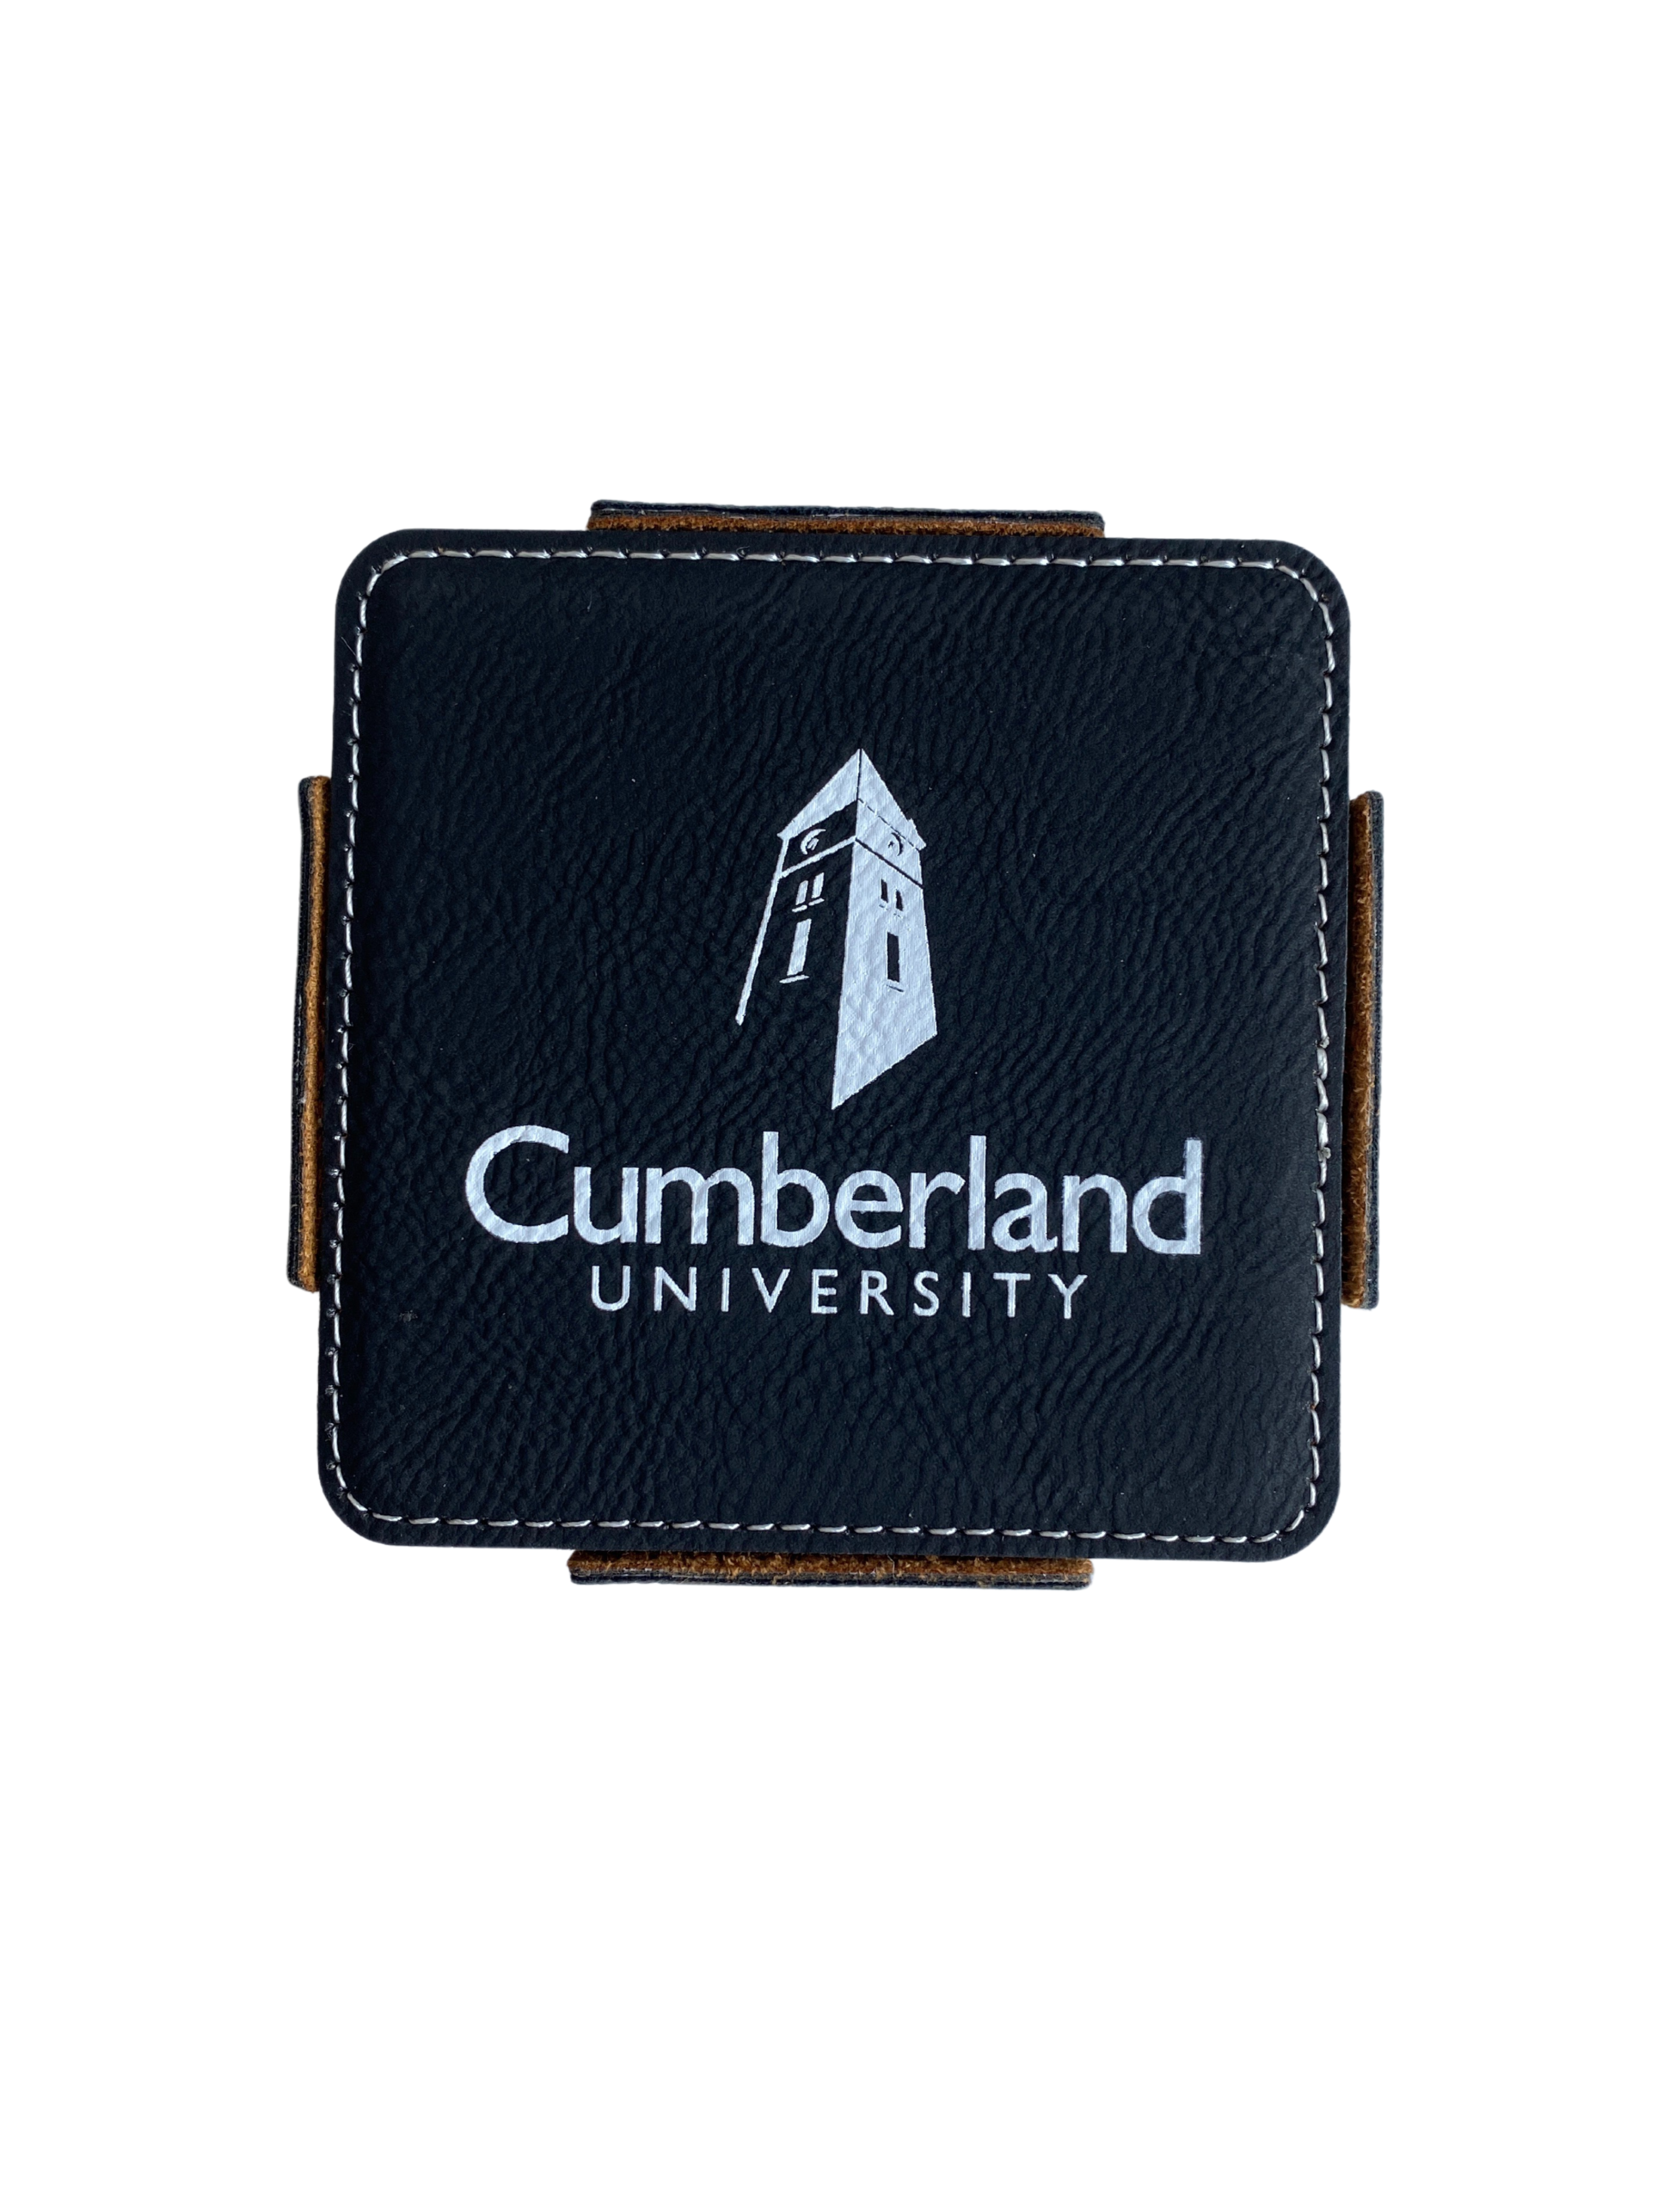 Cumberland University Leather Coaster Set